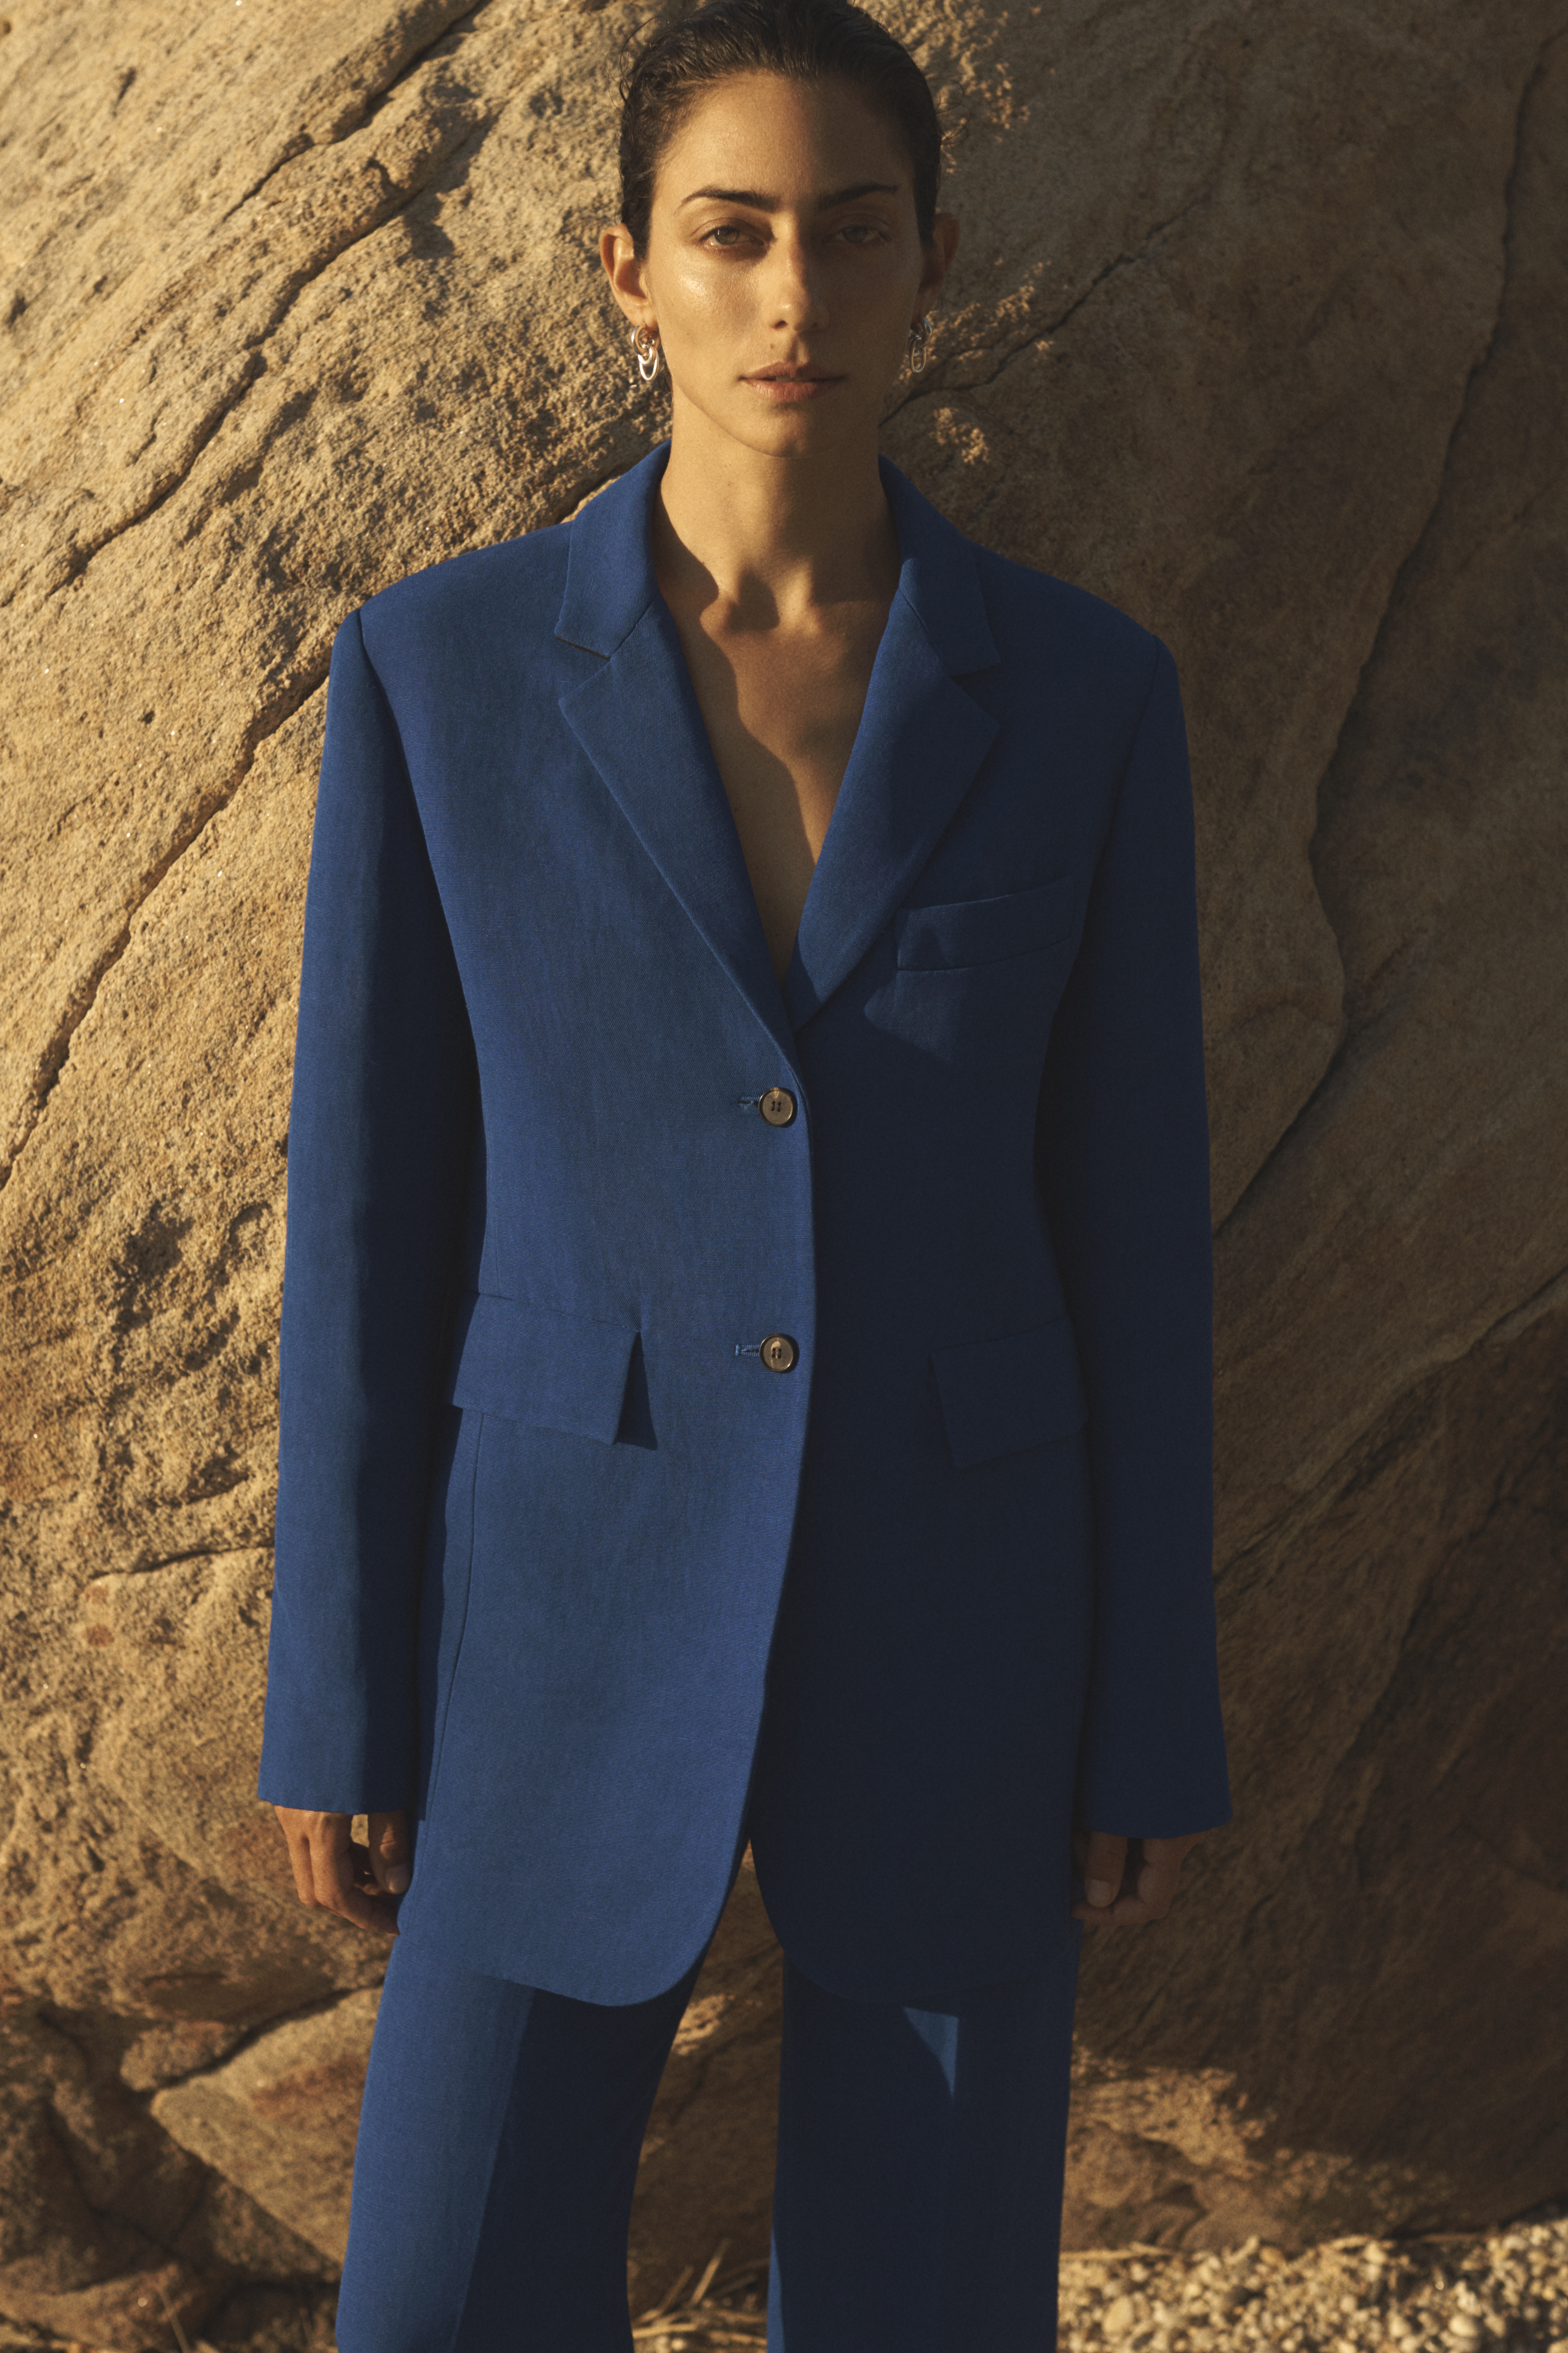 Single Breasted Jacket In Viscose Linen - Cobalt - by Zoe Gherter for Co